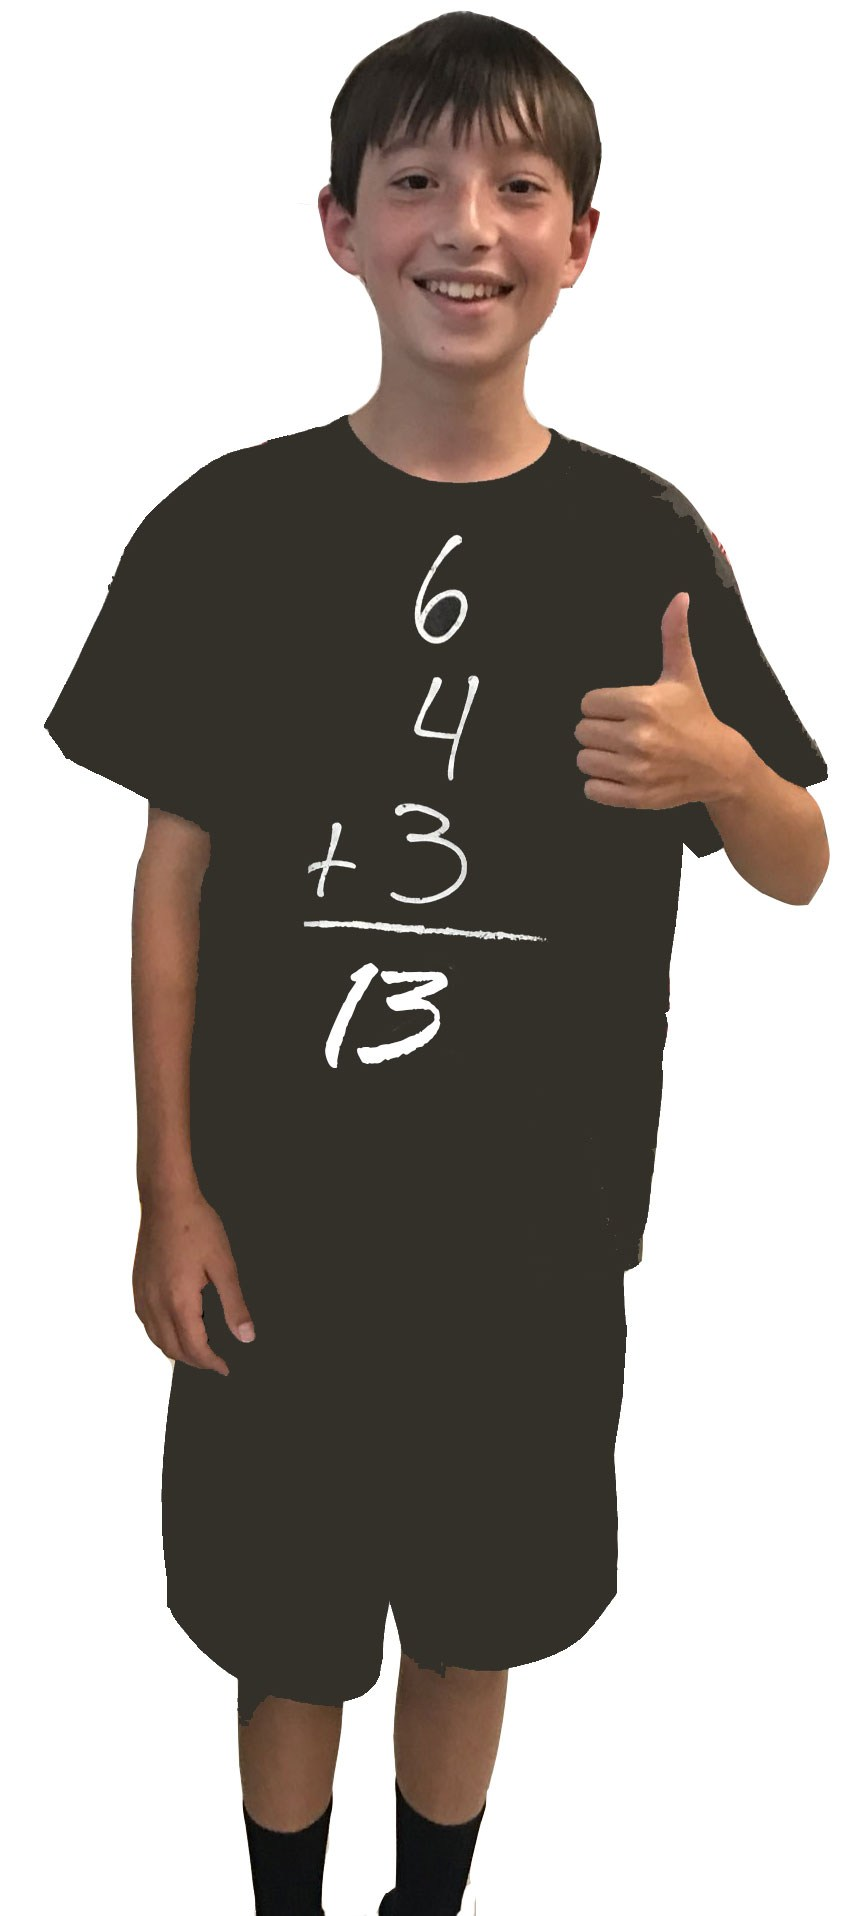 Mail junior high student wearing math t-shirt